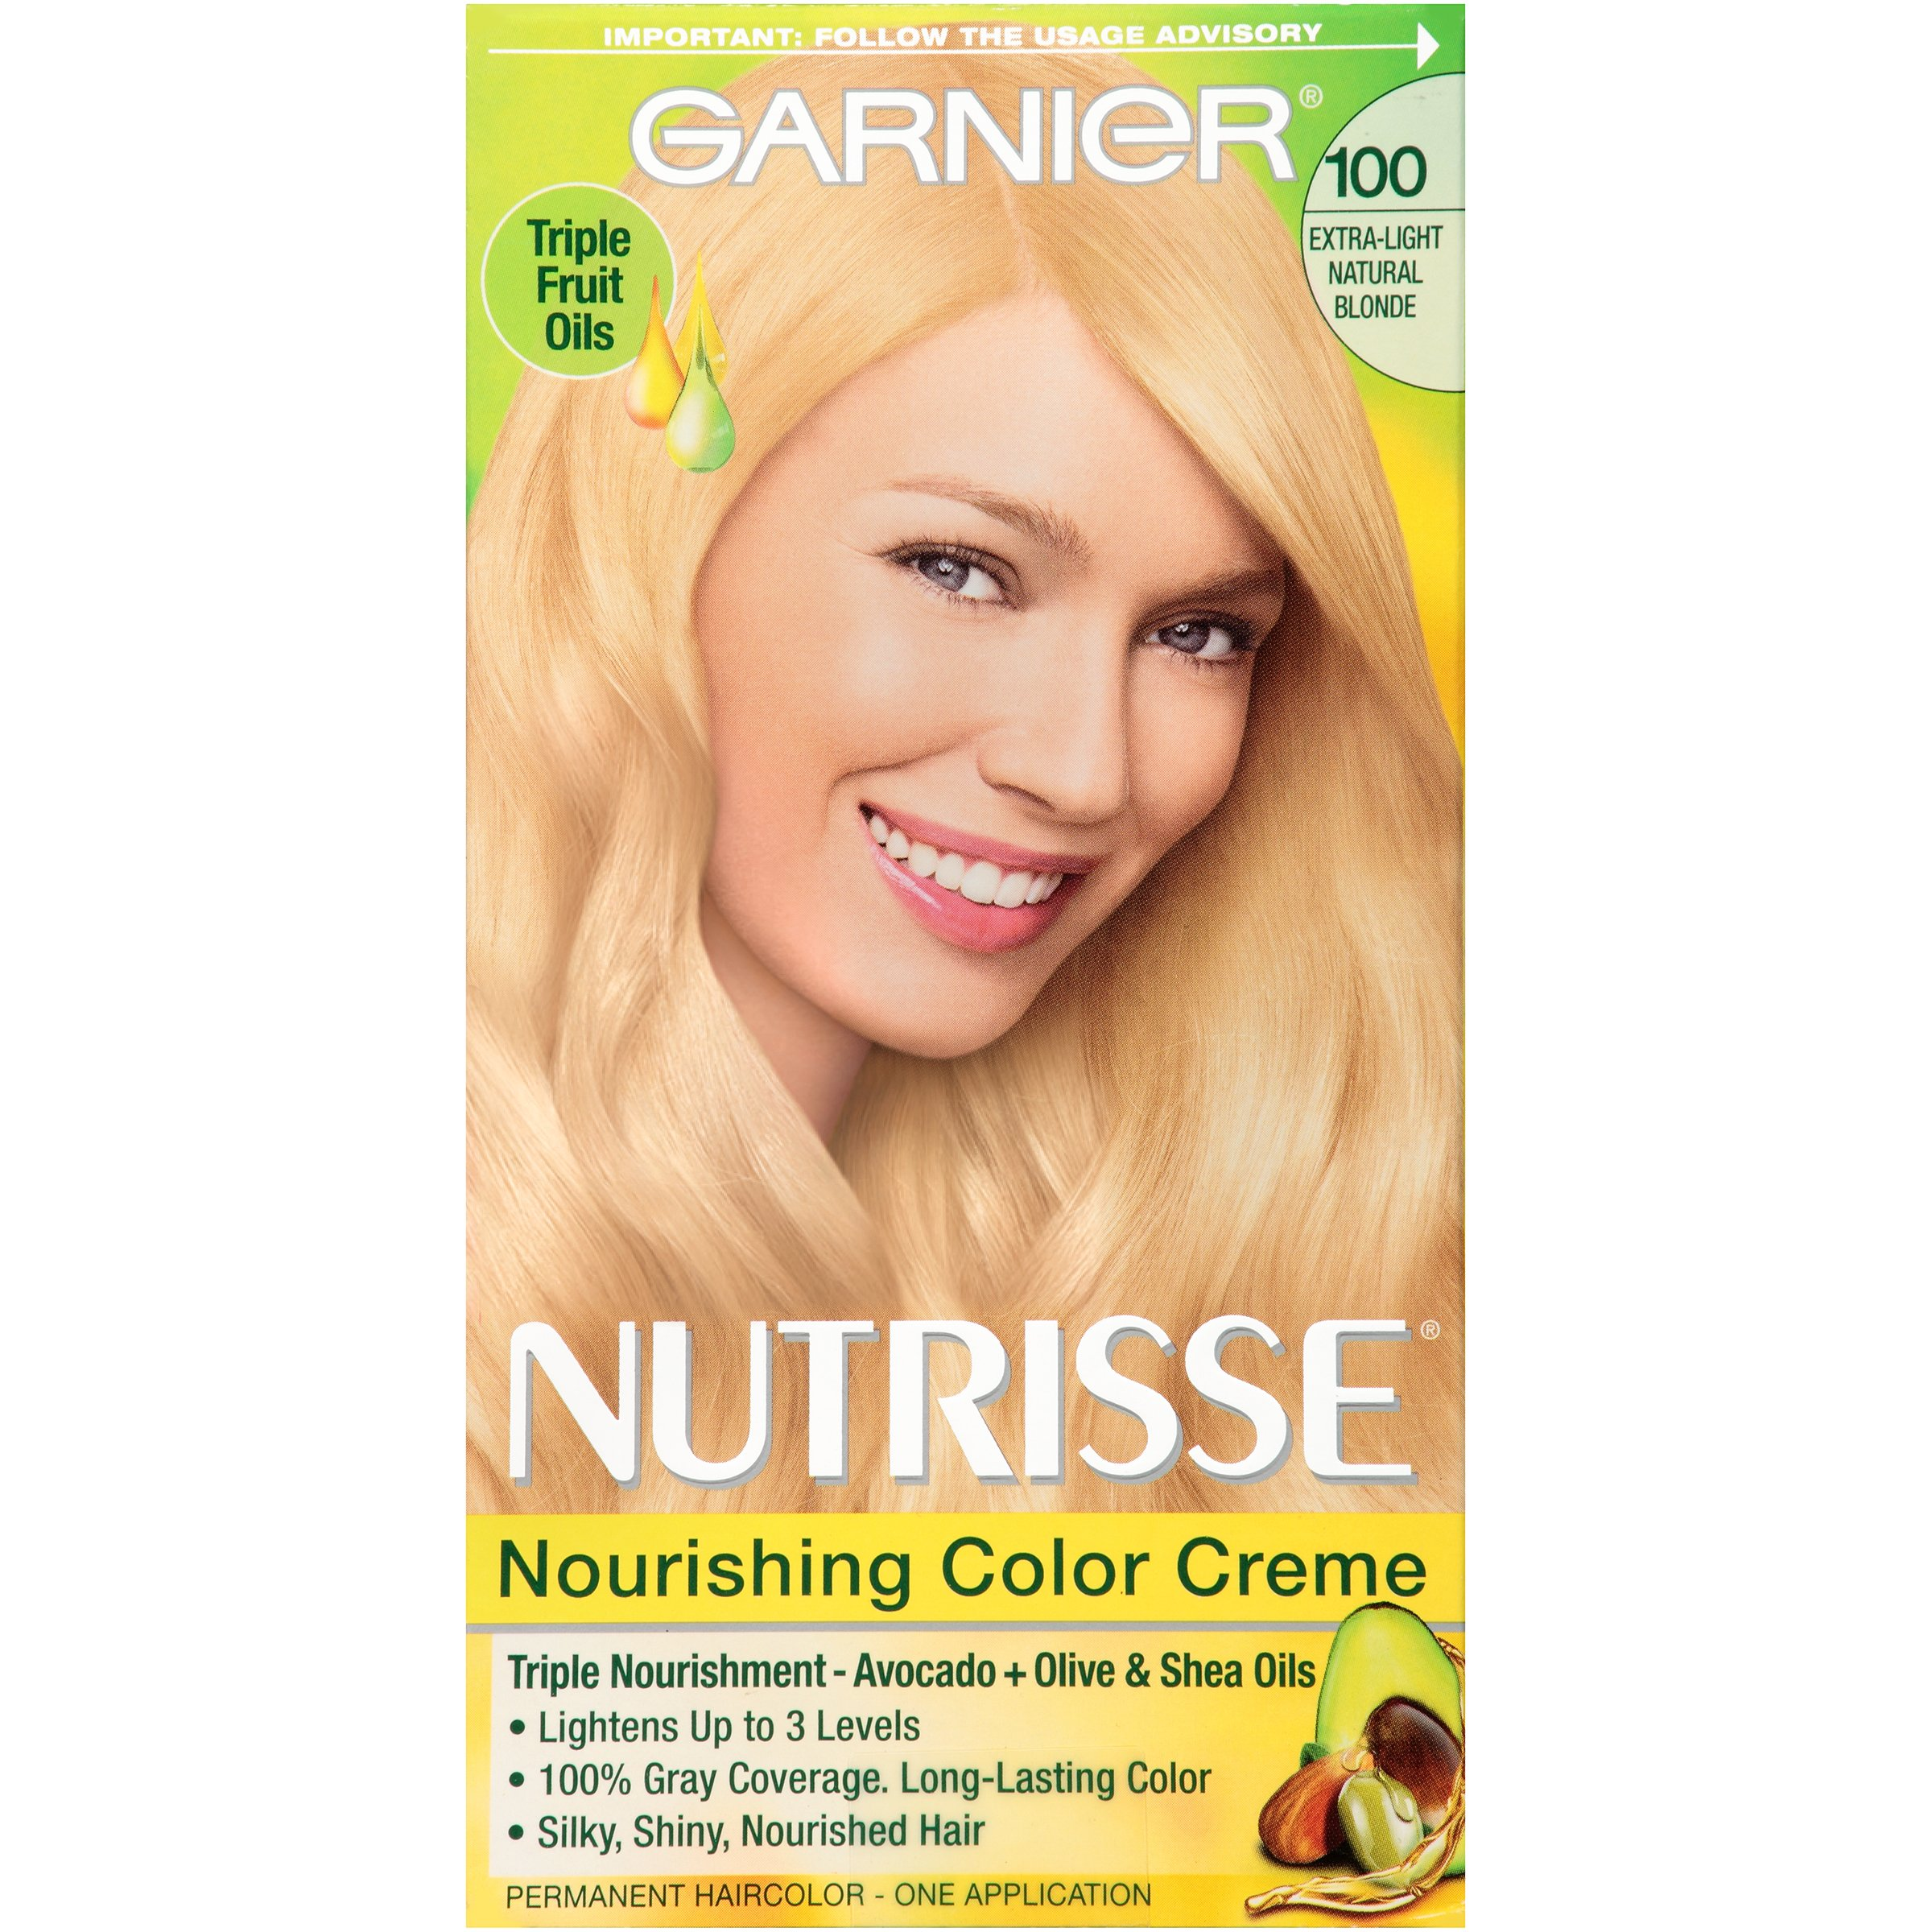 Cheap Garnier Nutrisse Hair Color Find Garnier Nutrisse Hair Color